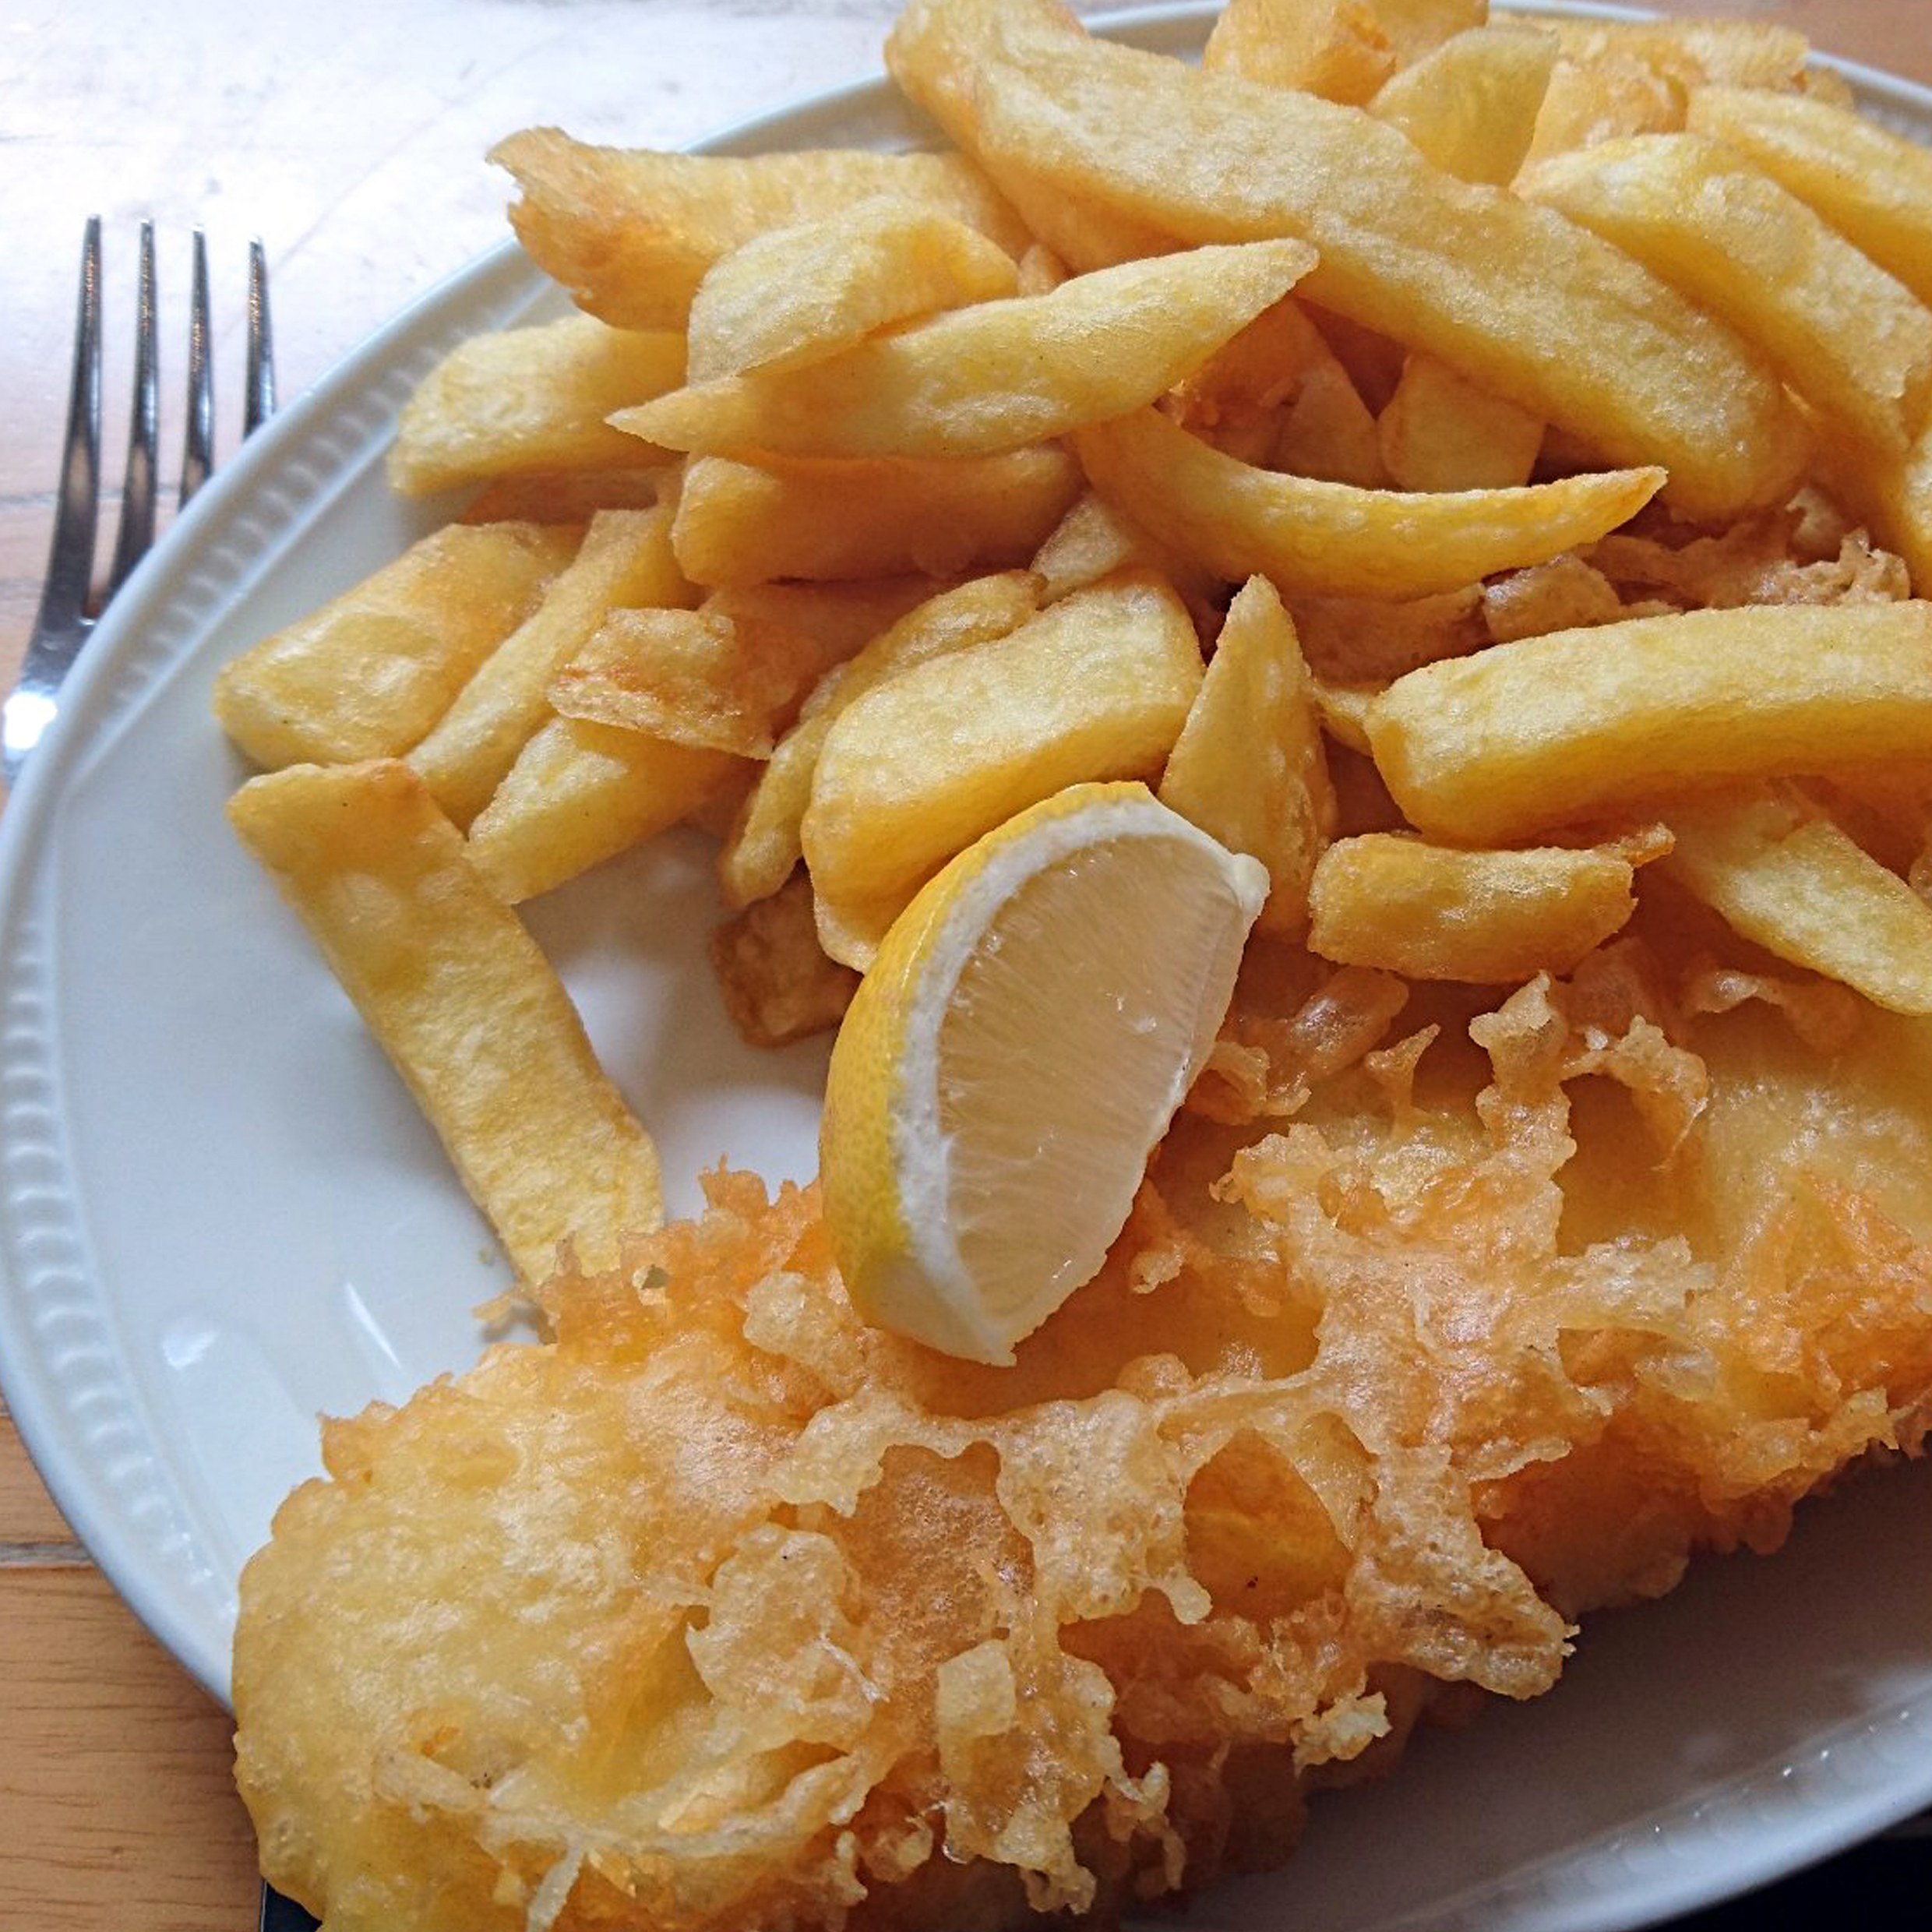 Kingfisher    Kingfisher offer fantastic fish and chips at a reasonable price. Or try their delicious homemade Cumberland sausage. The whole family will love the food here.